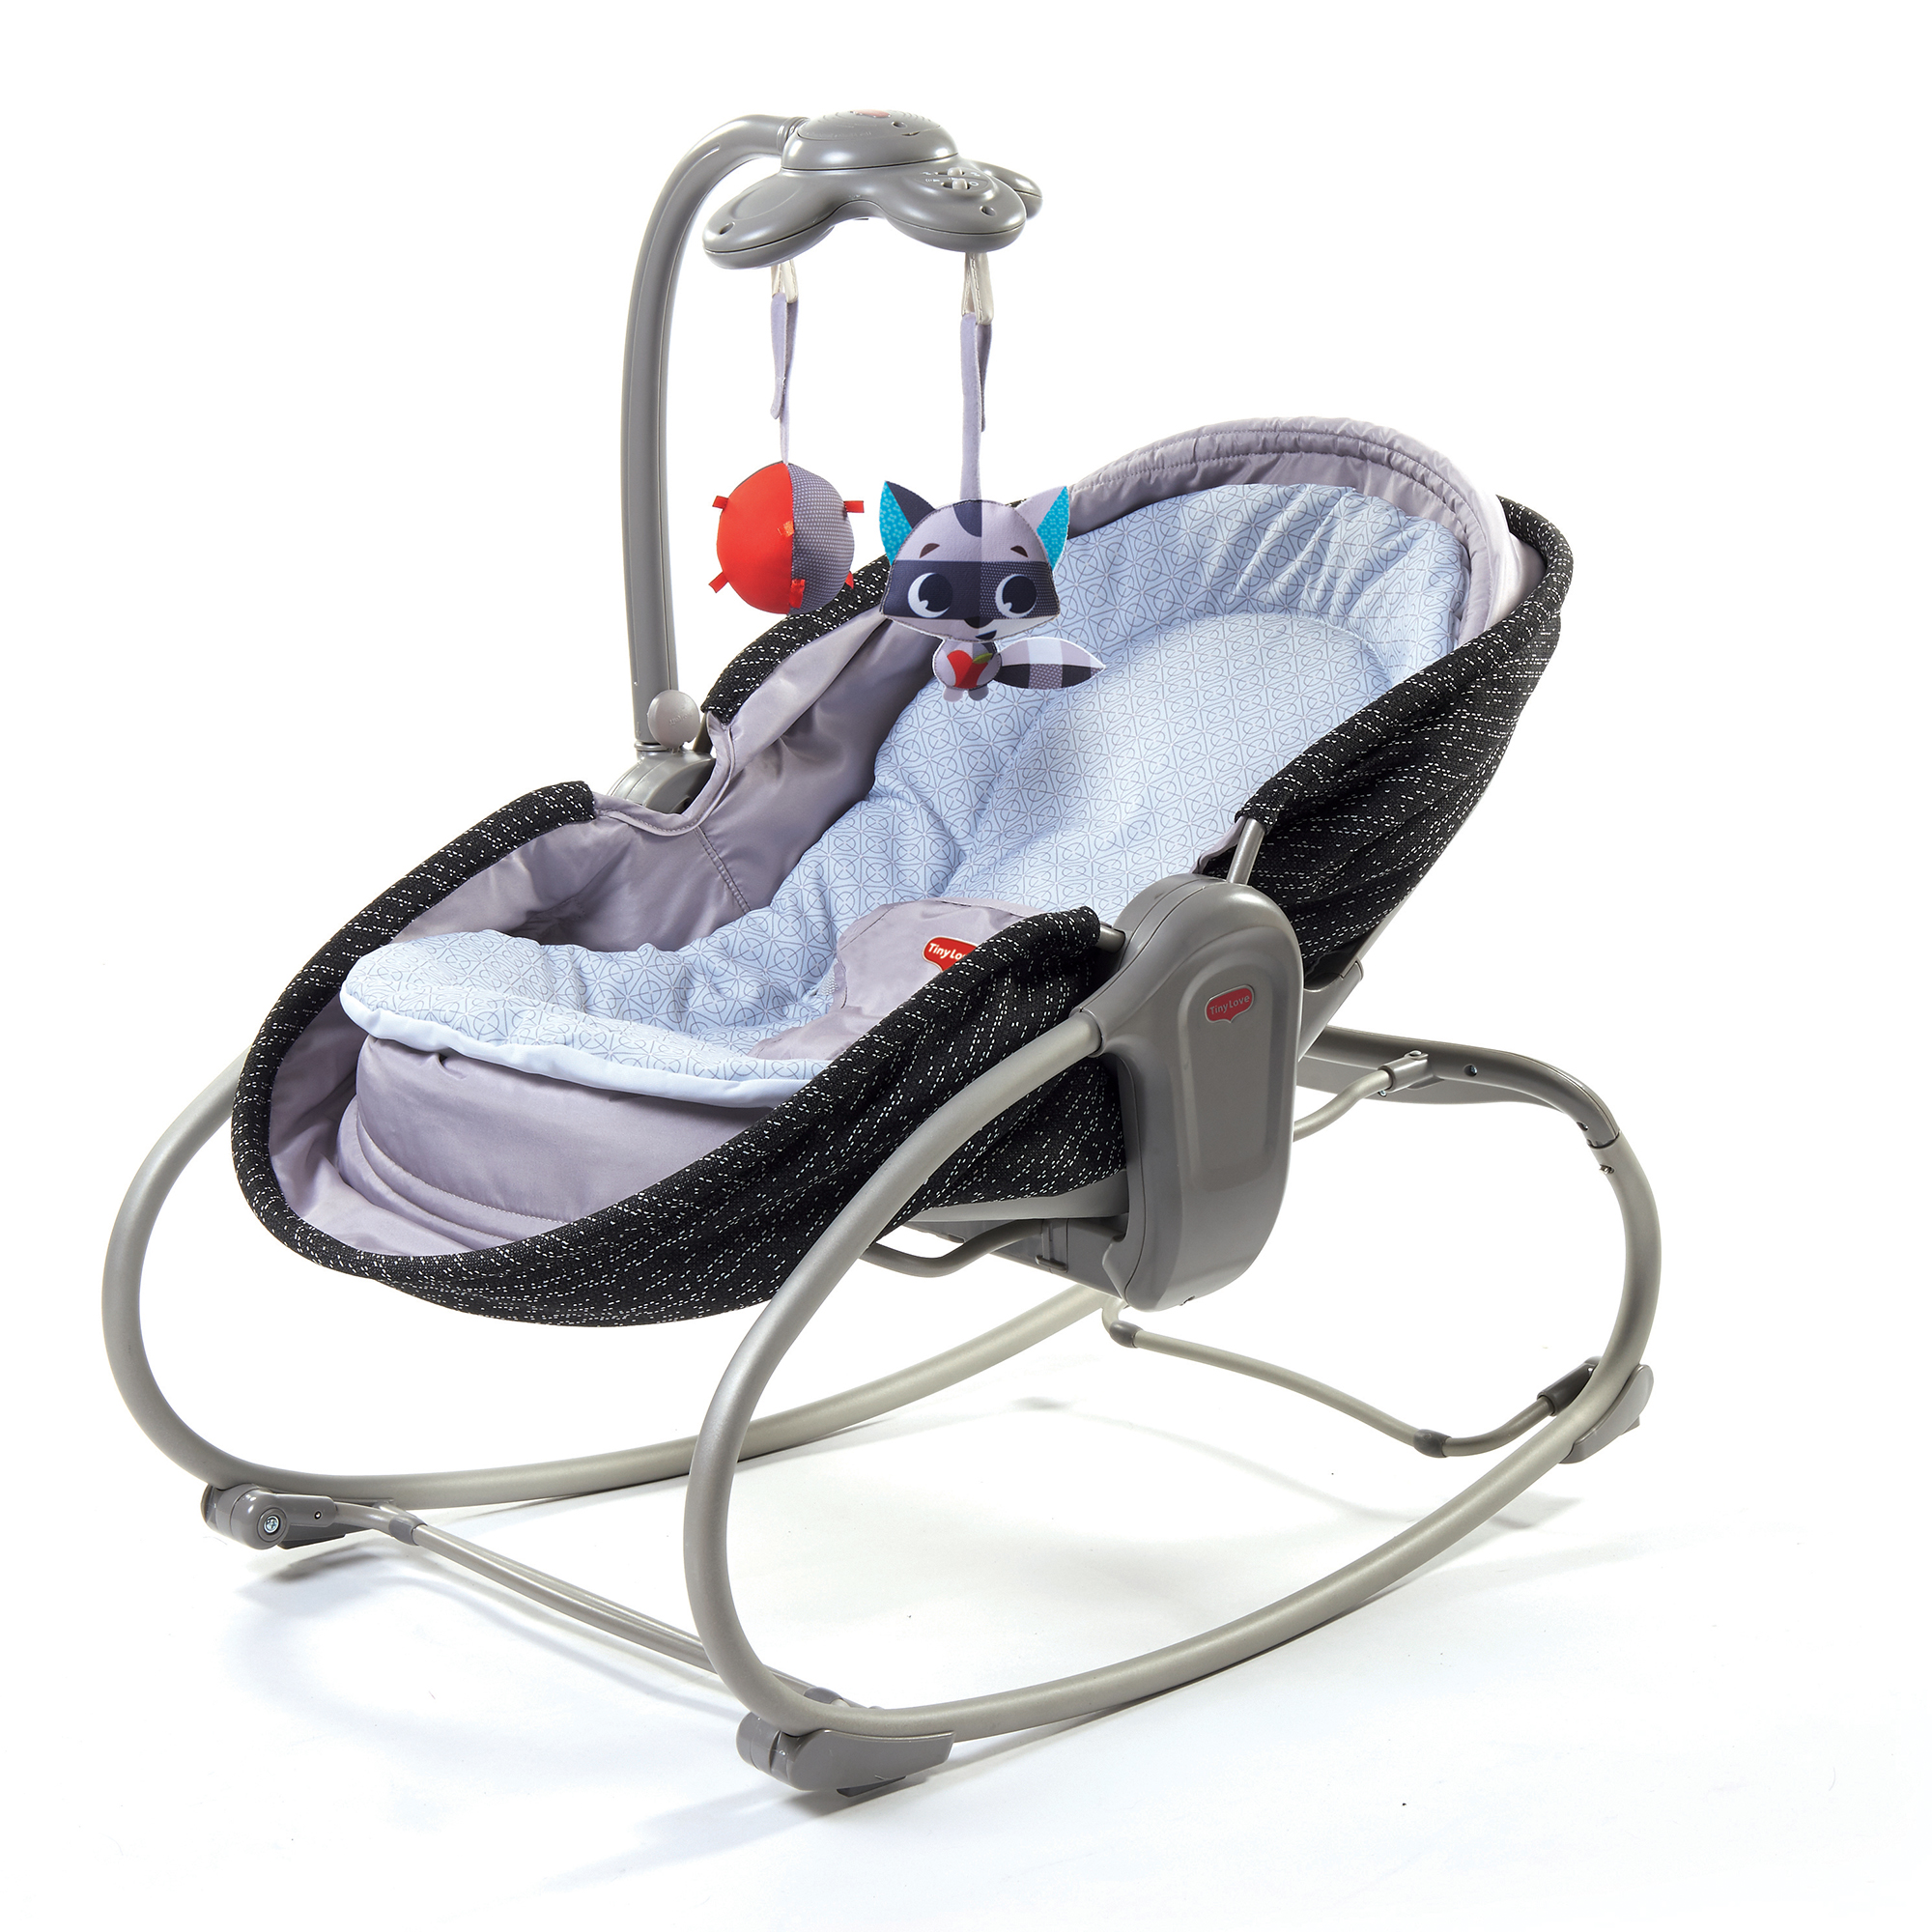 Sezlong 3 in 1, Tiny Love, Rocker Napper Luxe